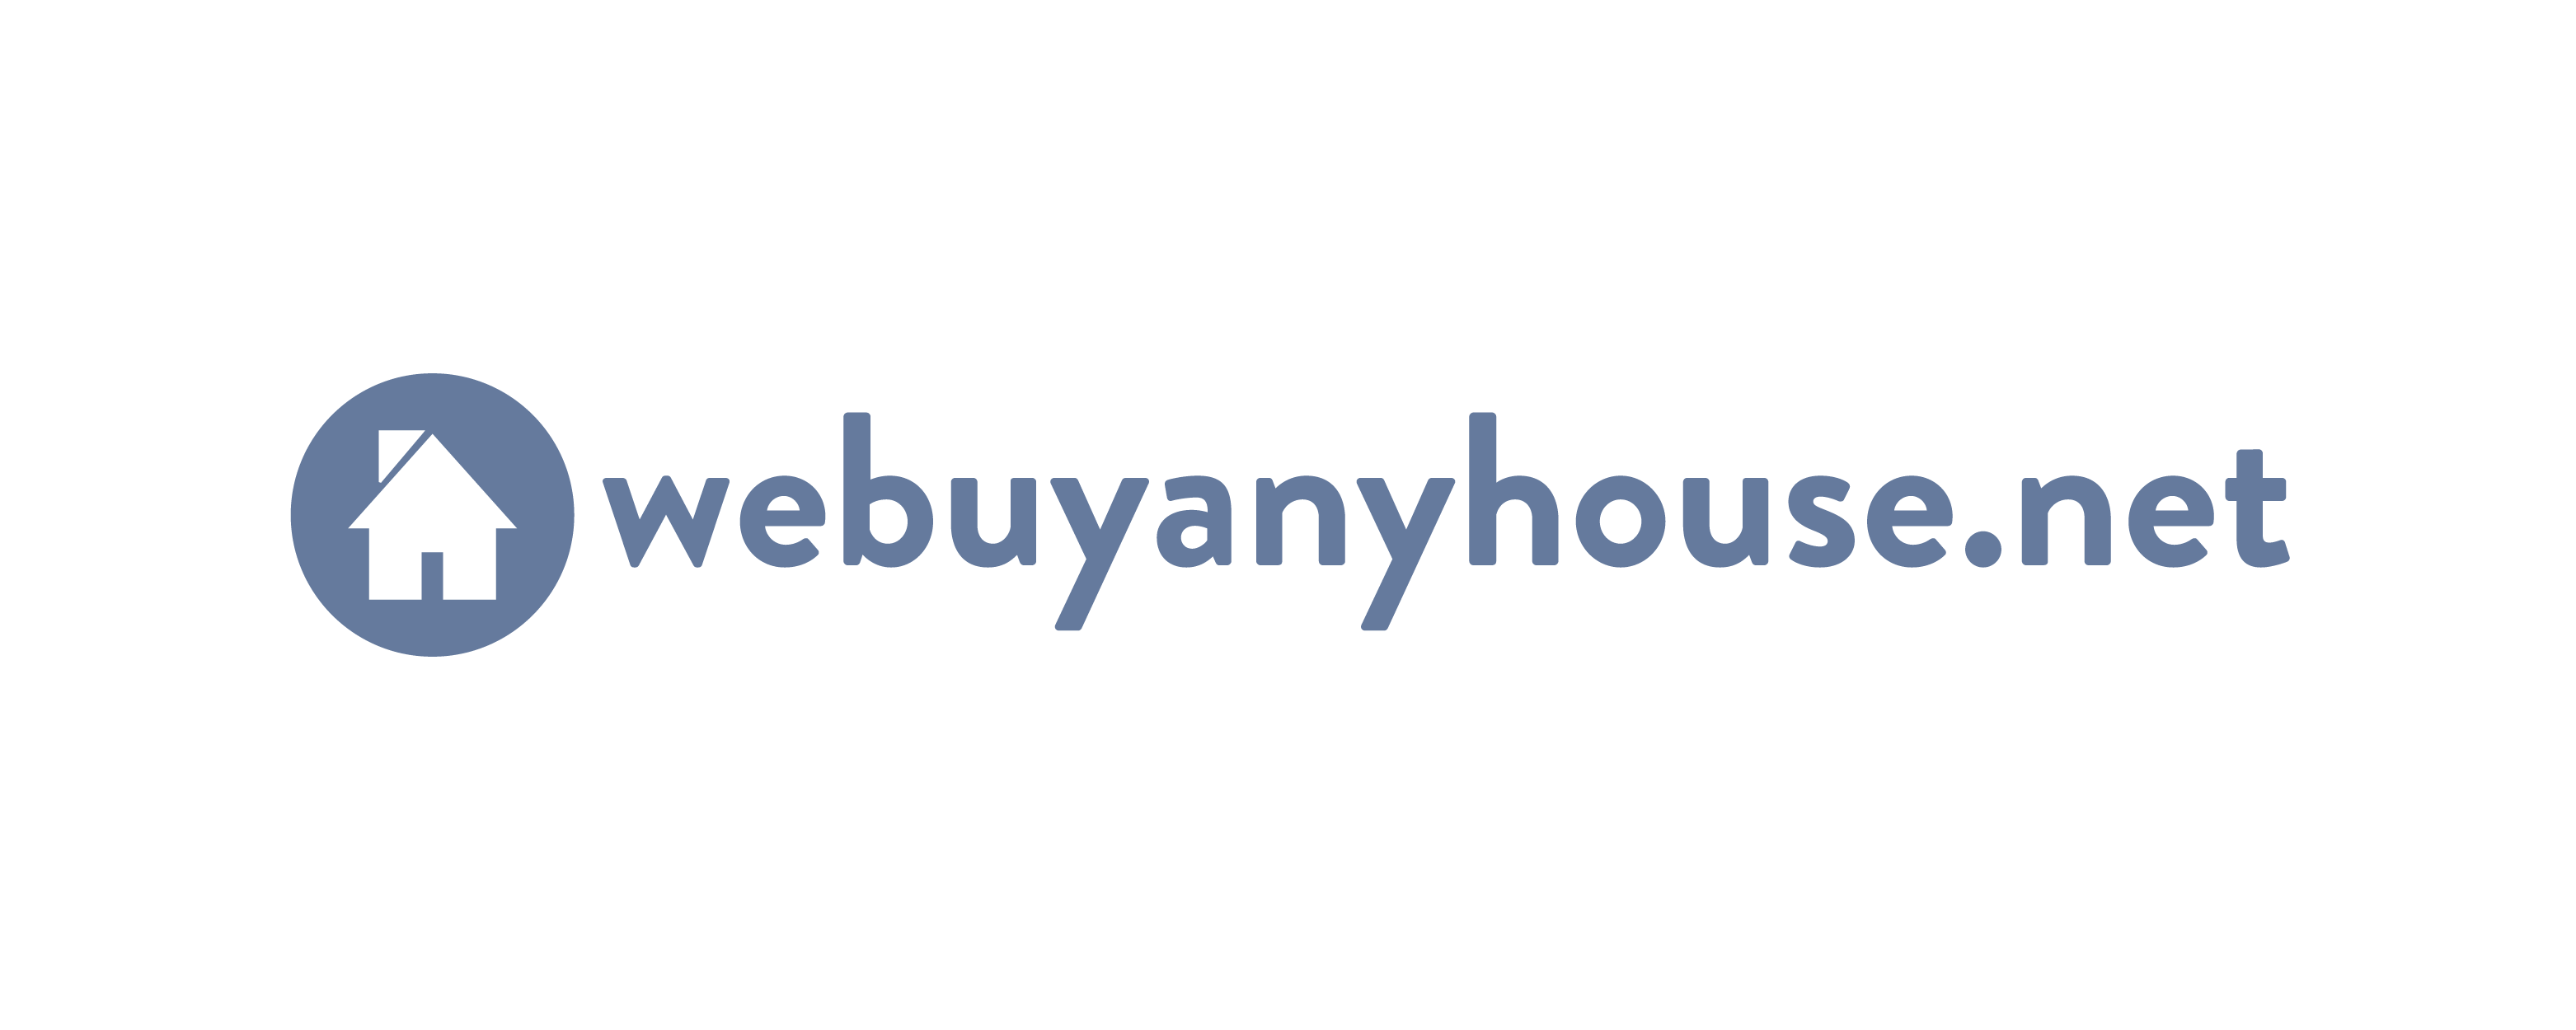 Read webuyanyhouse.net Reviews